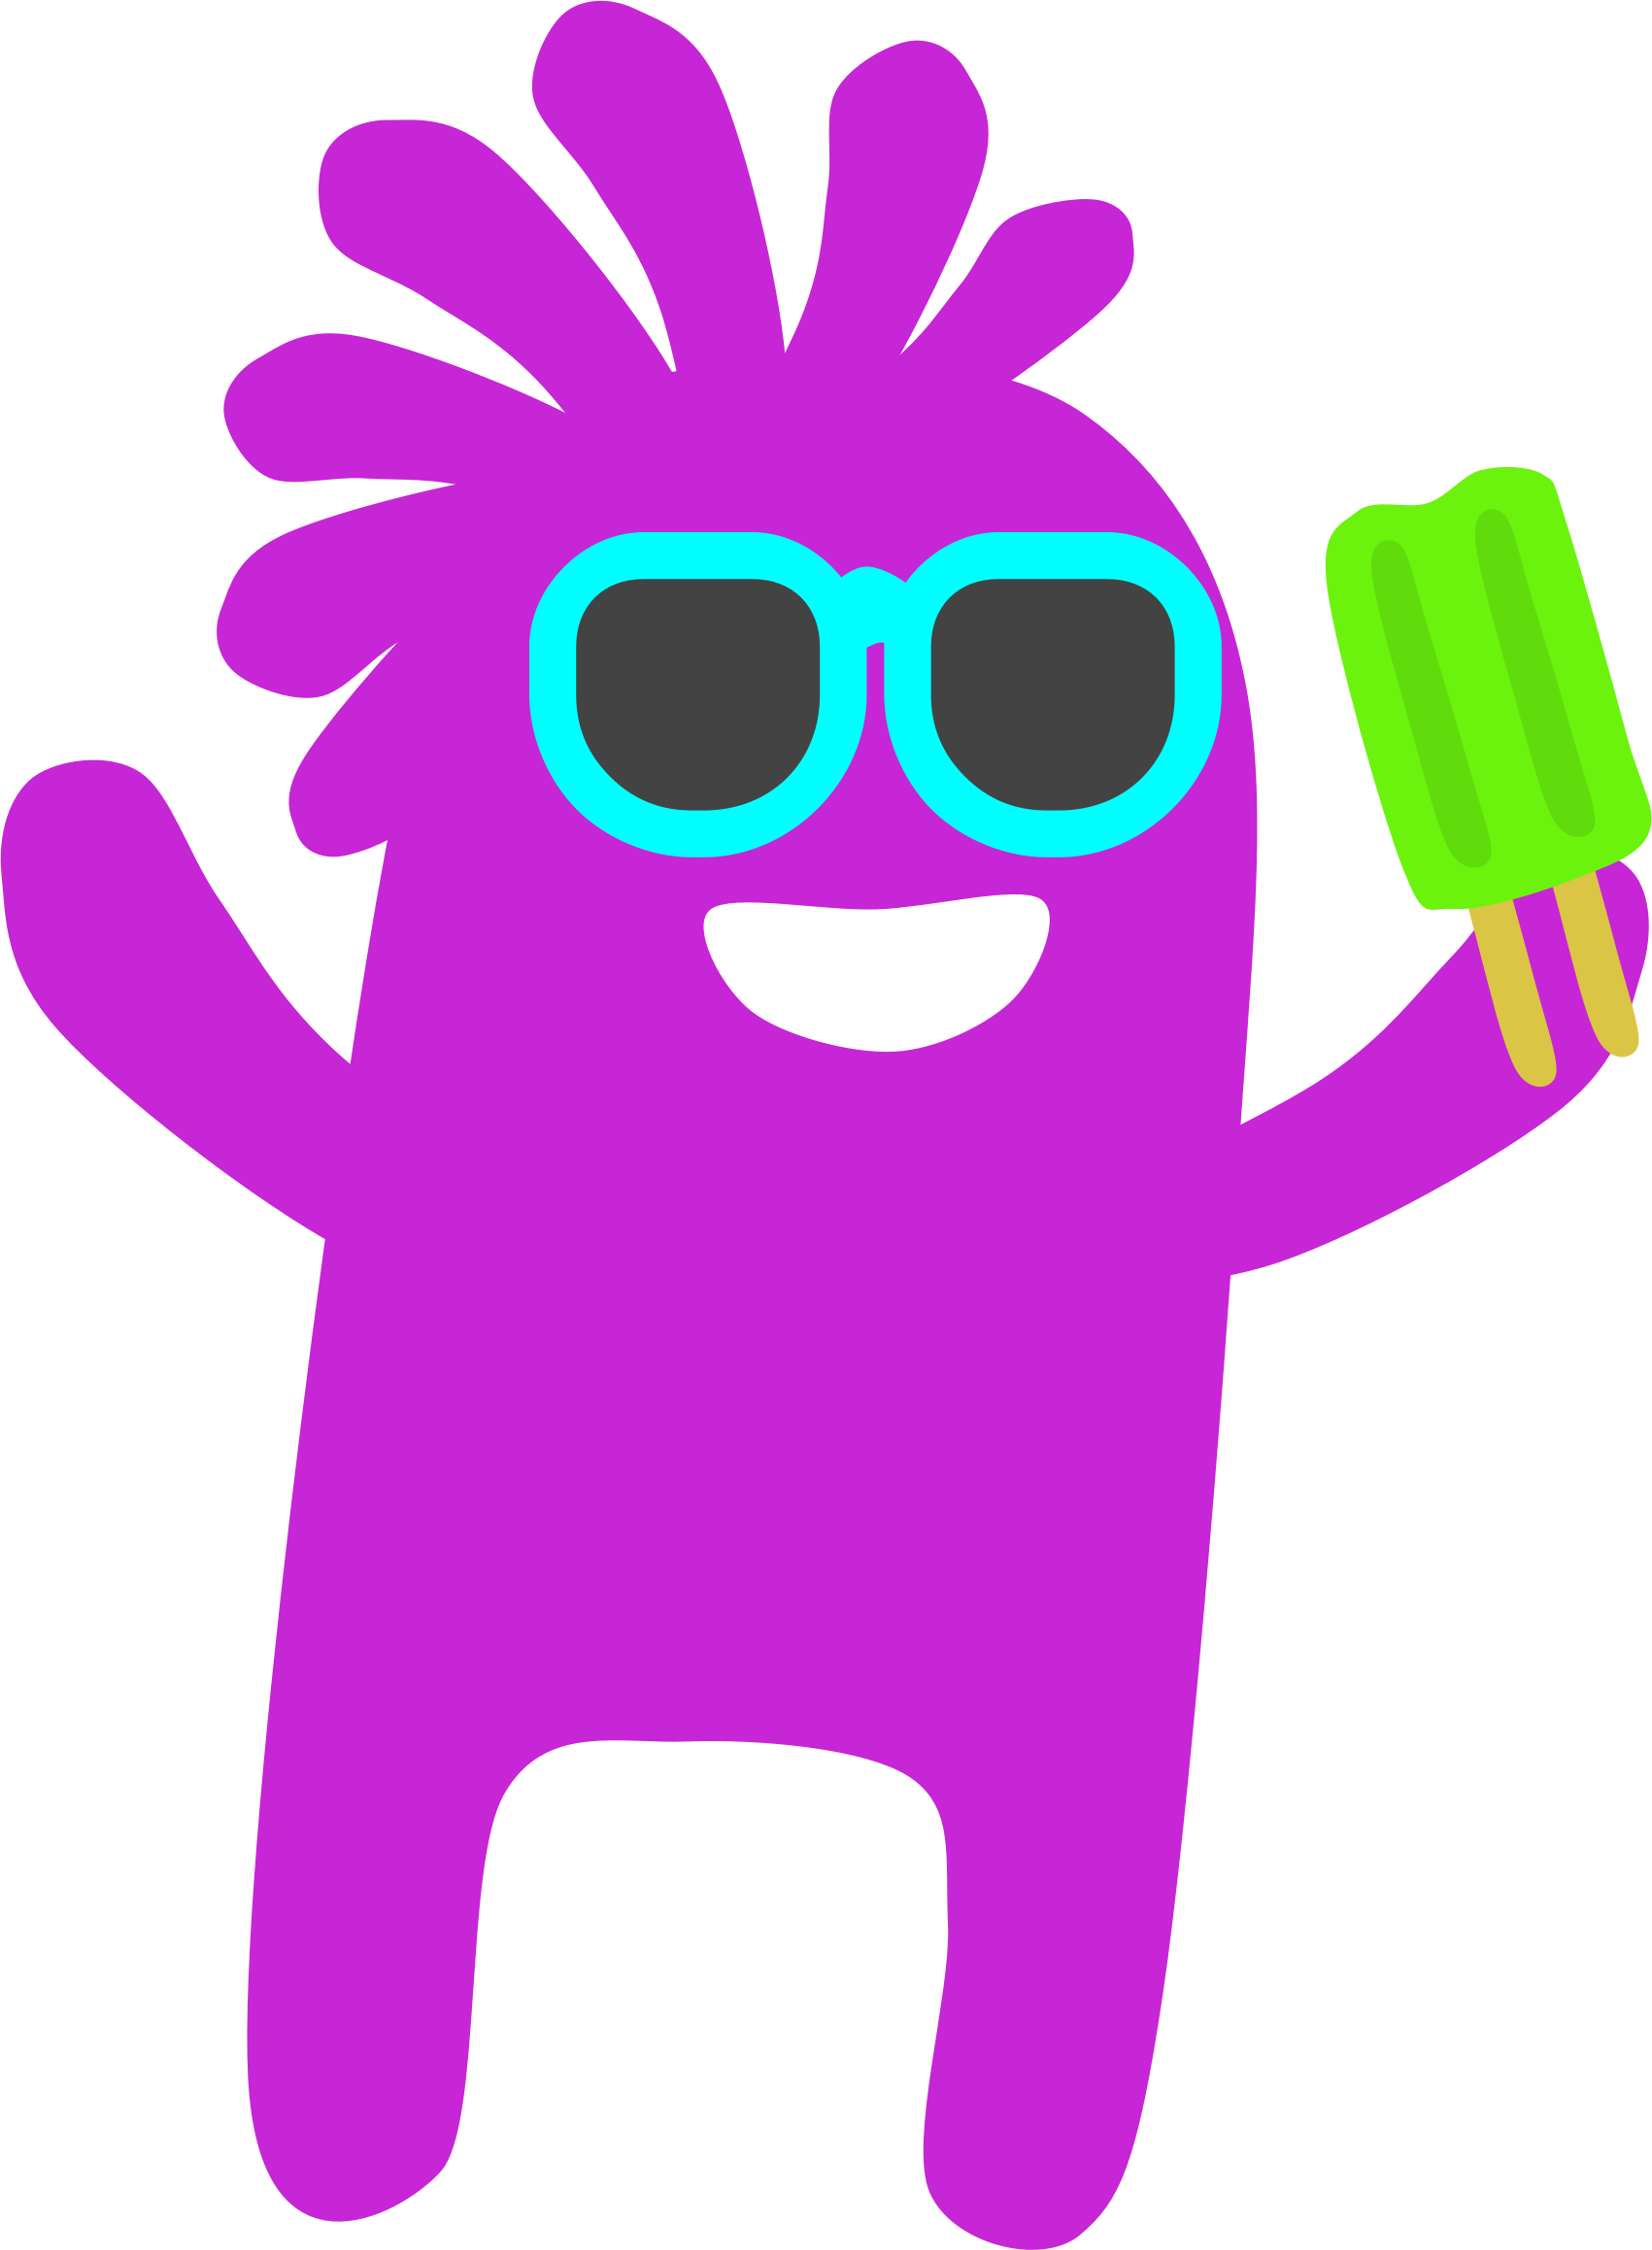 Raffle clipart monster. Make and publish your